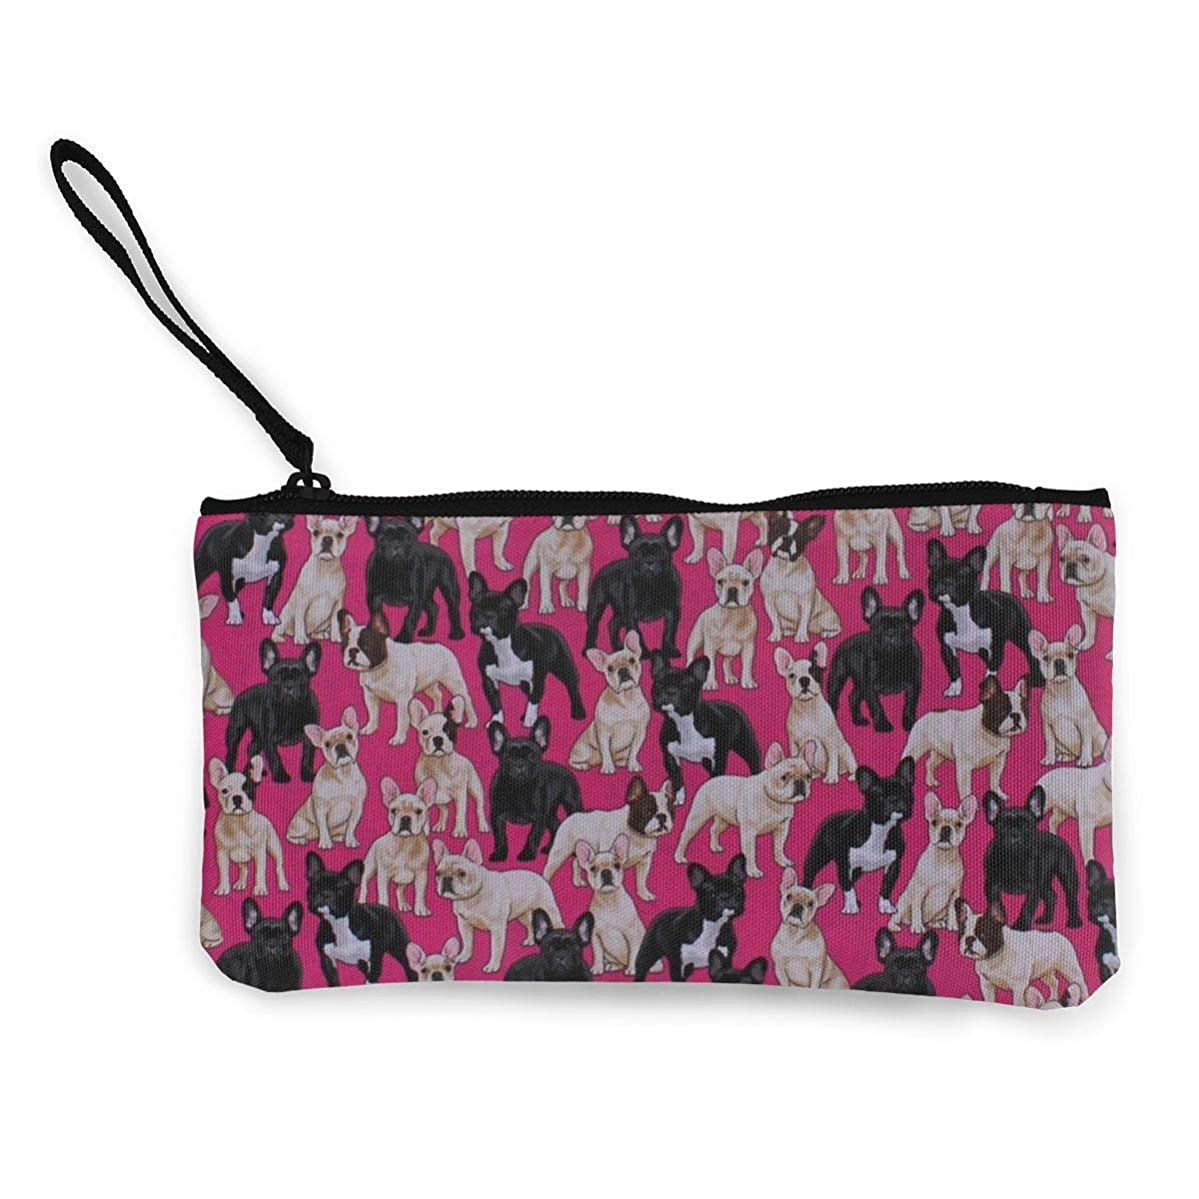 MODREACH Women's Wristlet Wallet Clutch for Smartphones with Wrist Strap Card Coin Purse Case - French Bulldogs Dogs Pets Puppy